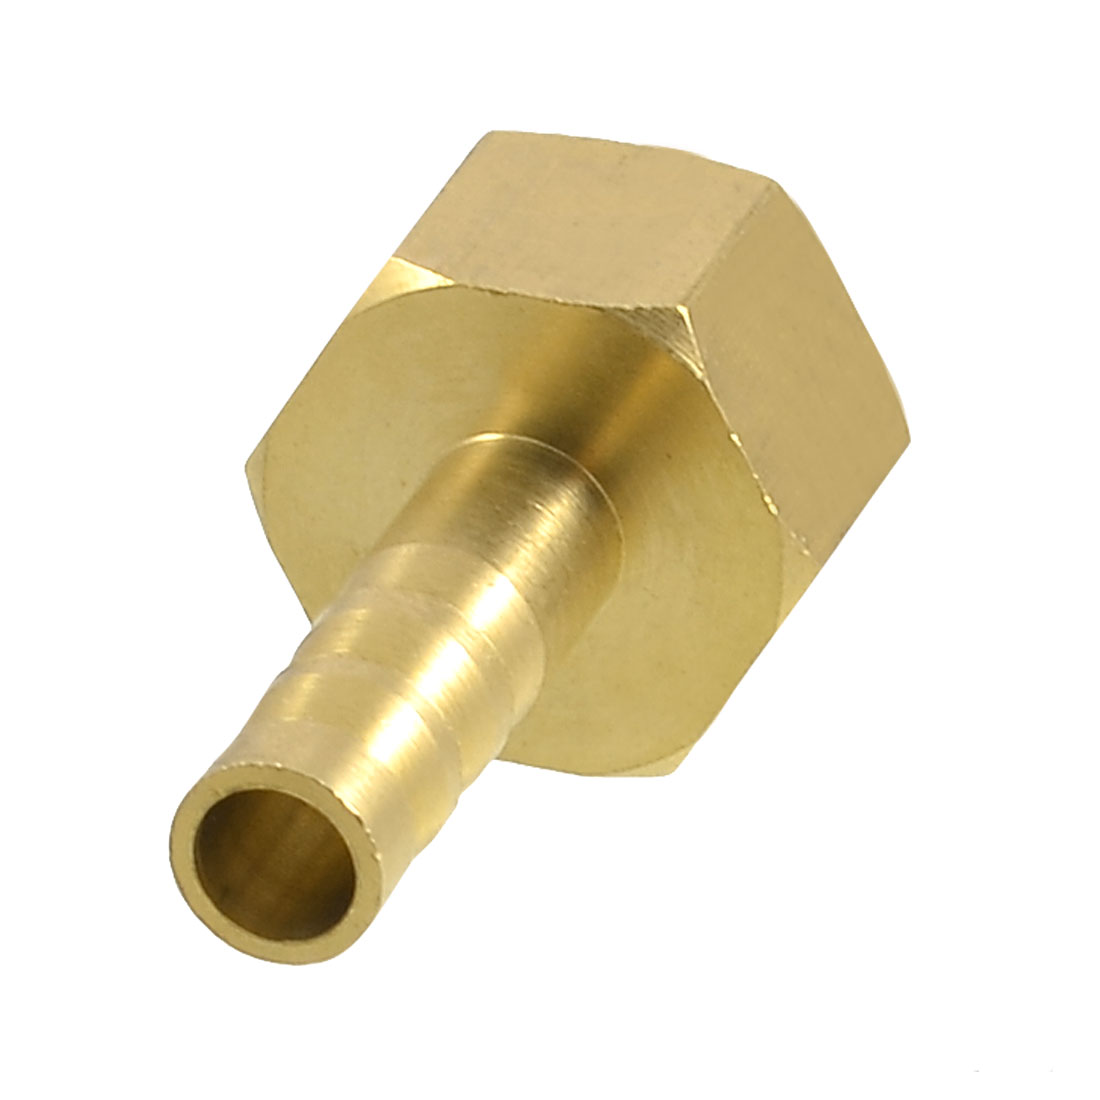 "1/4""NPT Male Thread Hoses Dia Air Tube Tubing Connector"